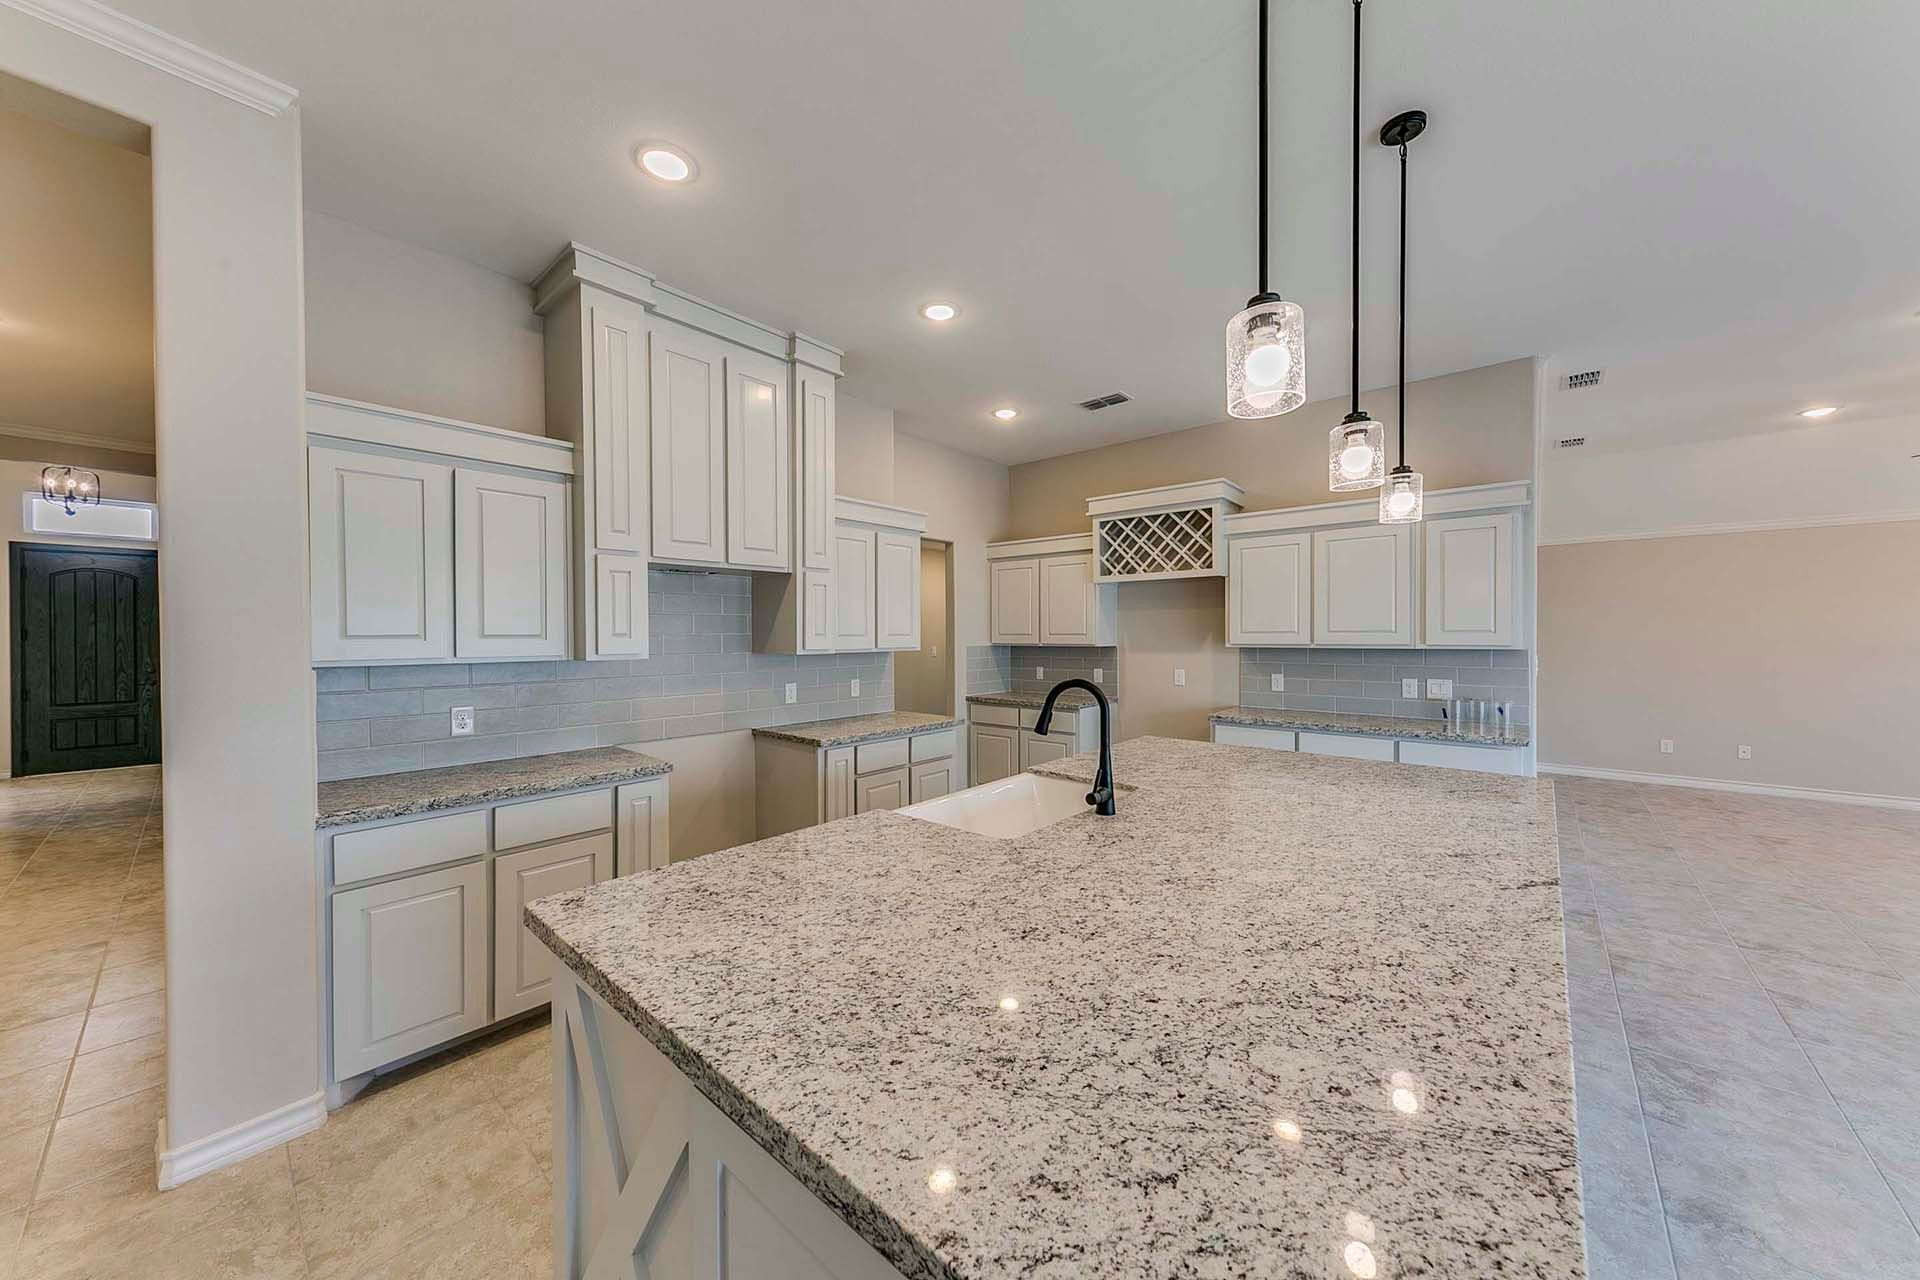 Kitchen featured in the Victoria II By WestWind Homes in Rio Grande Valley, TX